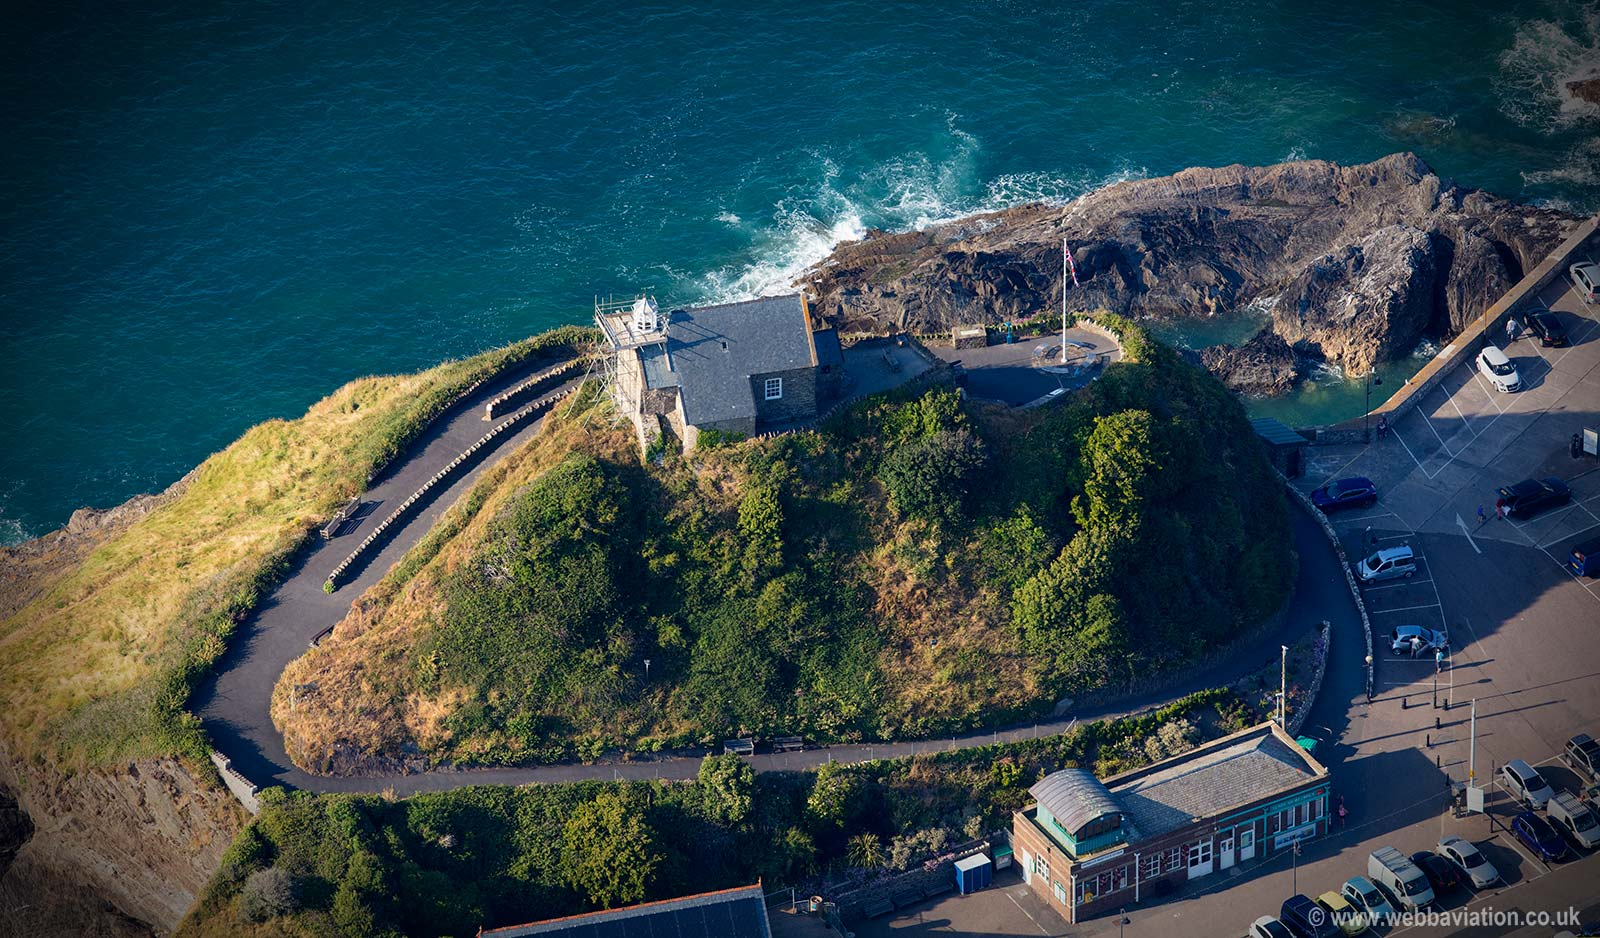 St. Nicholas's Chapel Ilfracombe  aerial photograph